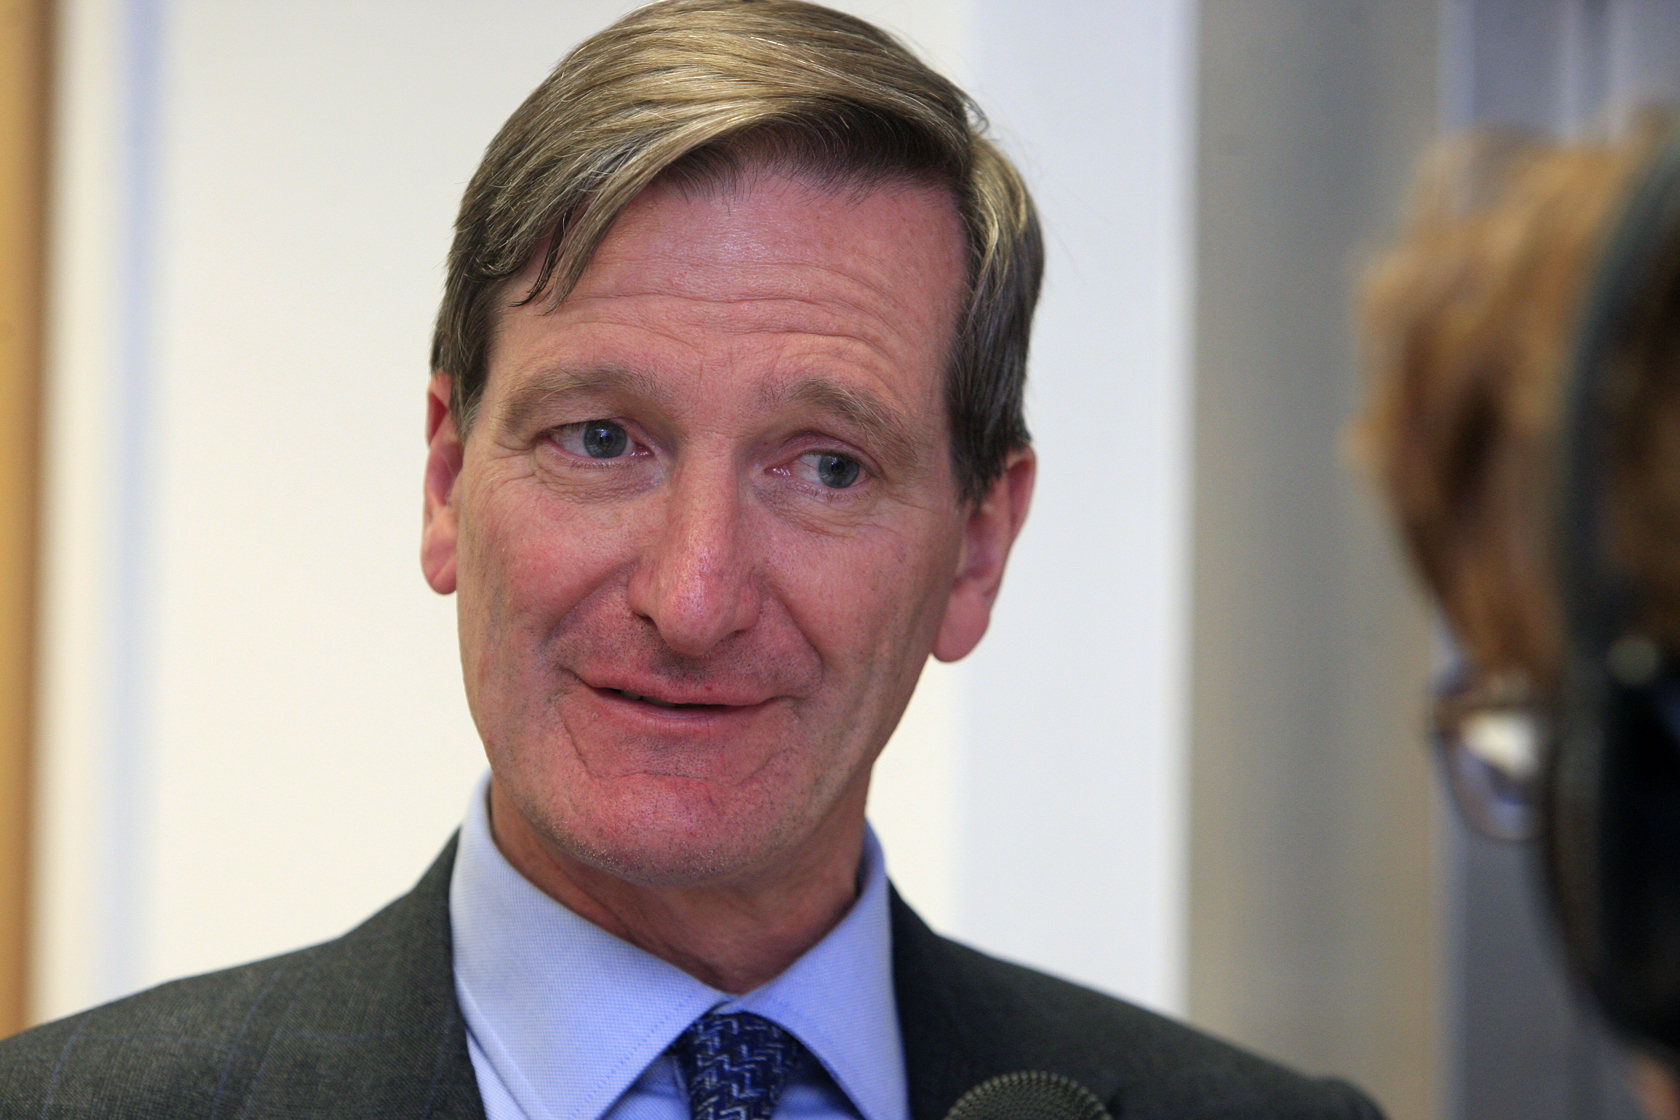 Beaconsfield MP Dominic Grieve says he feels 'liberated' as he launches independent re-election campaign - Bucks Free Press